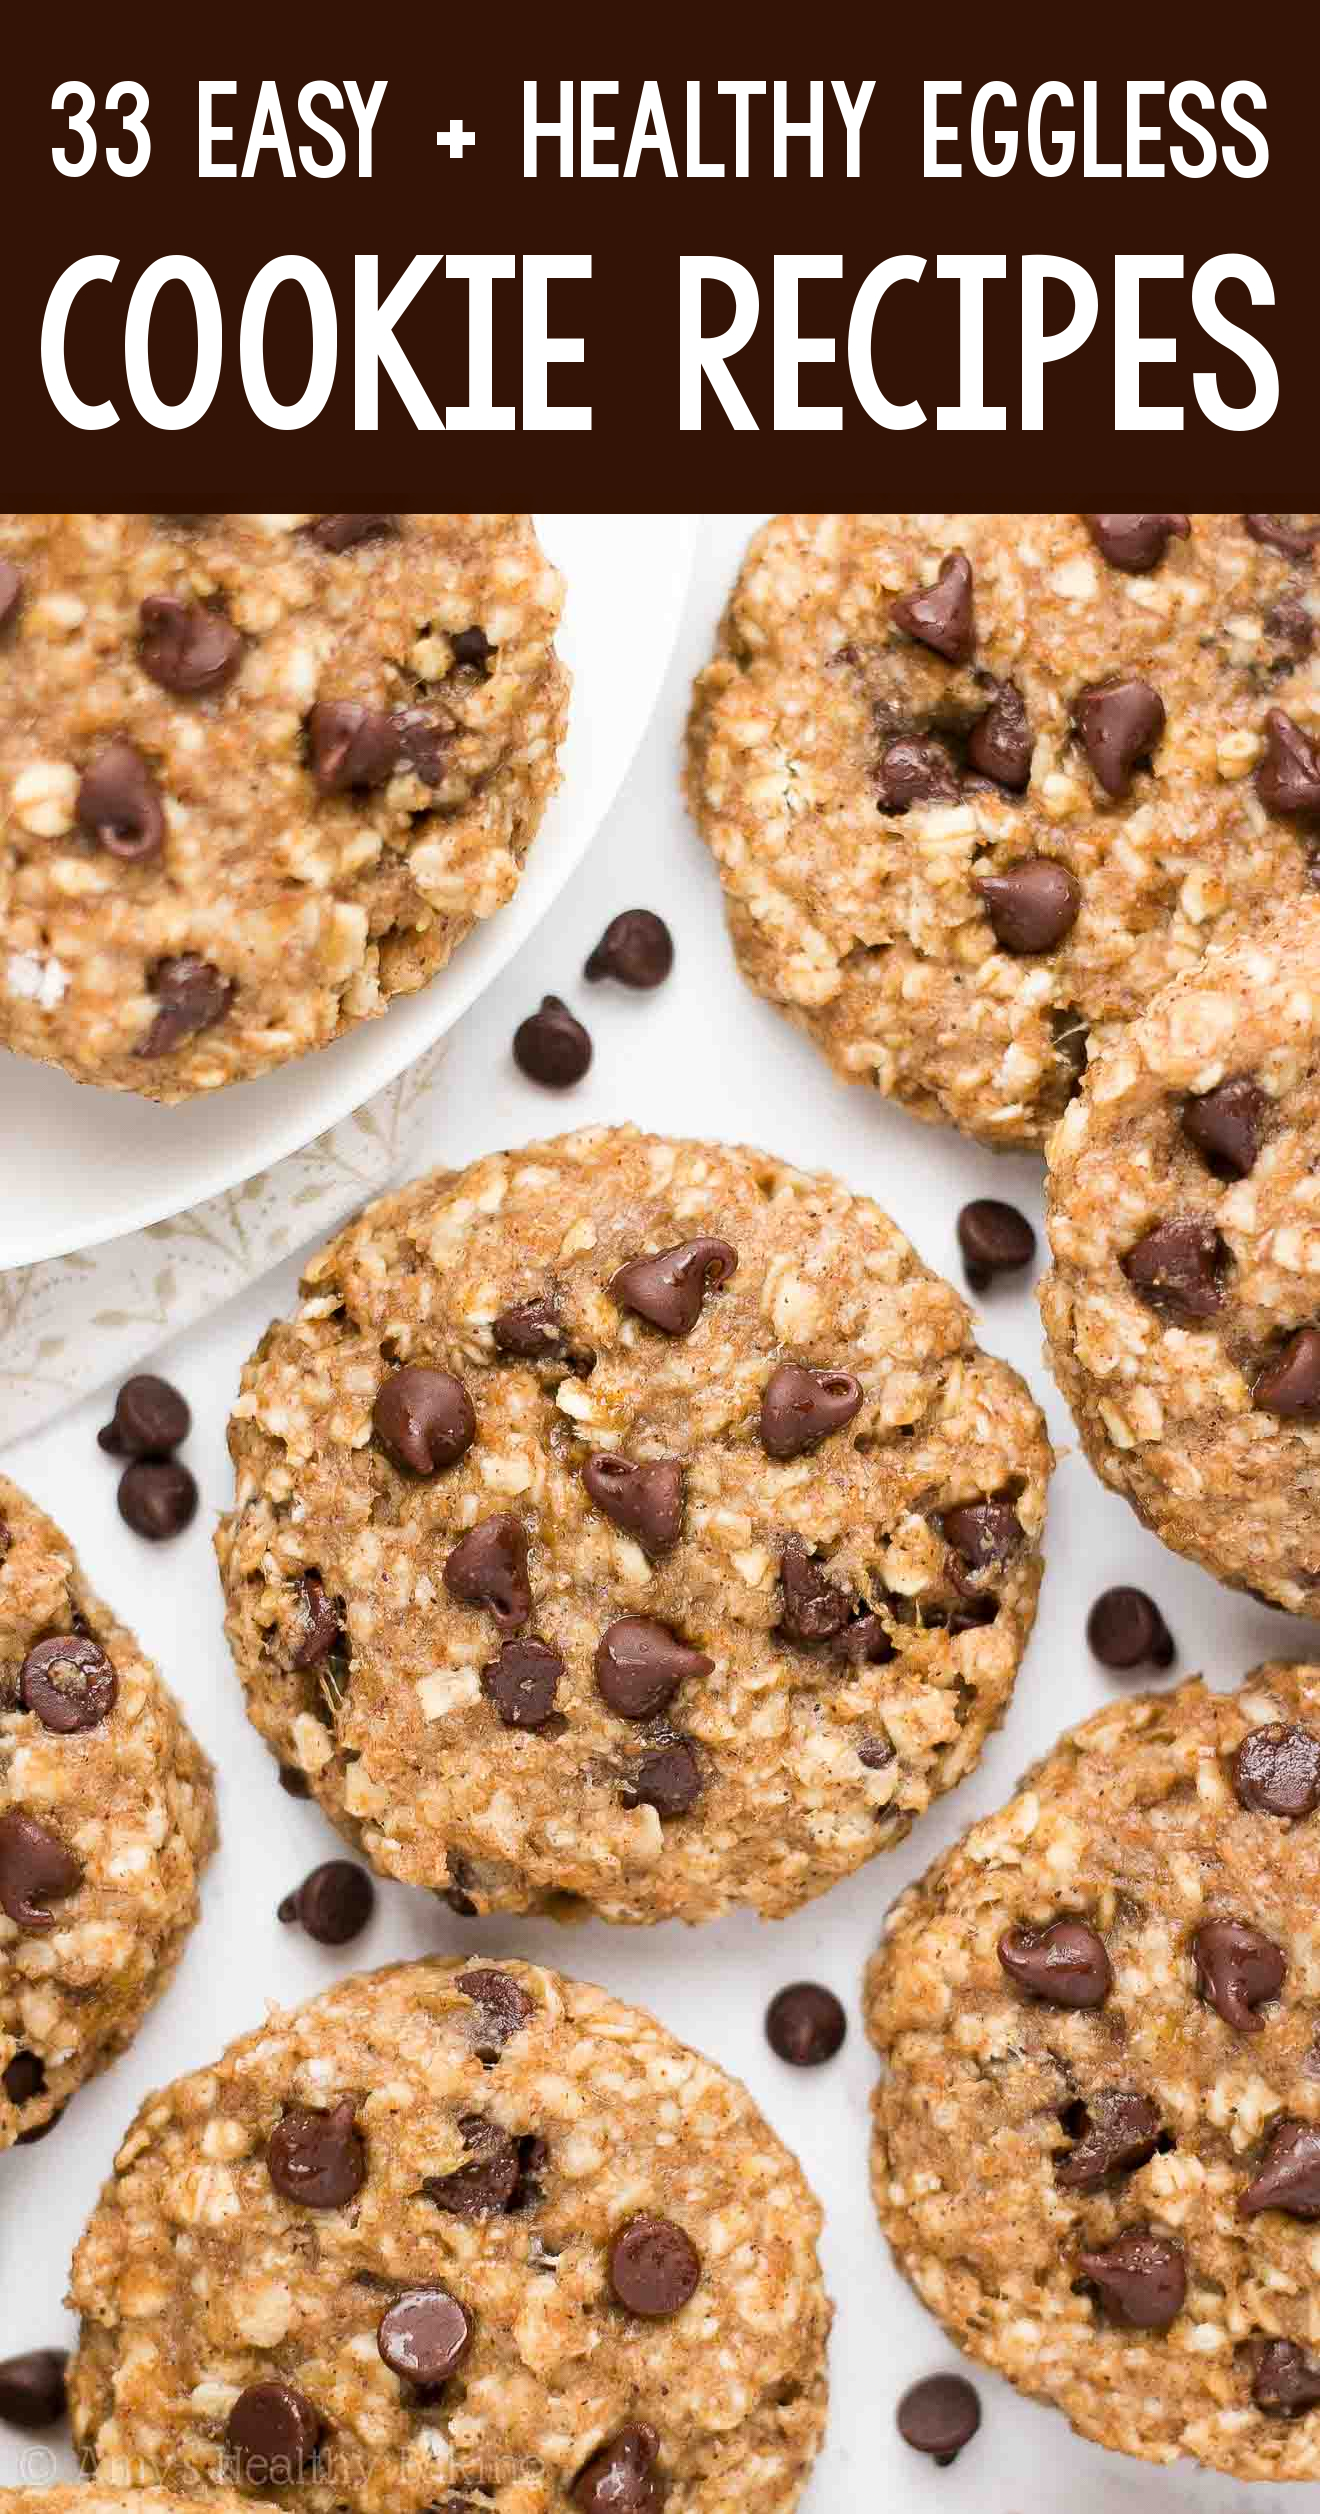 the BEST EVER healthy dairy-free eggless vegan banana chocolate chip oatmeal breakfast cookies